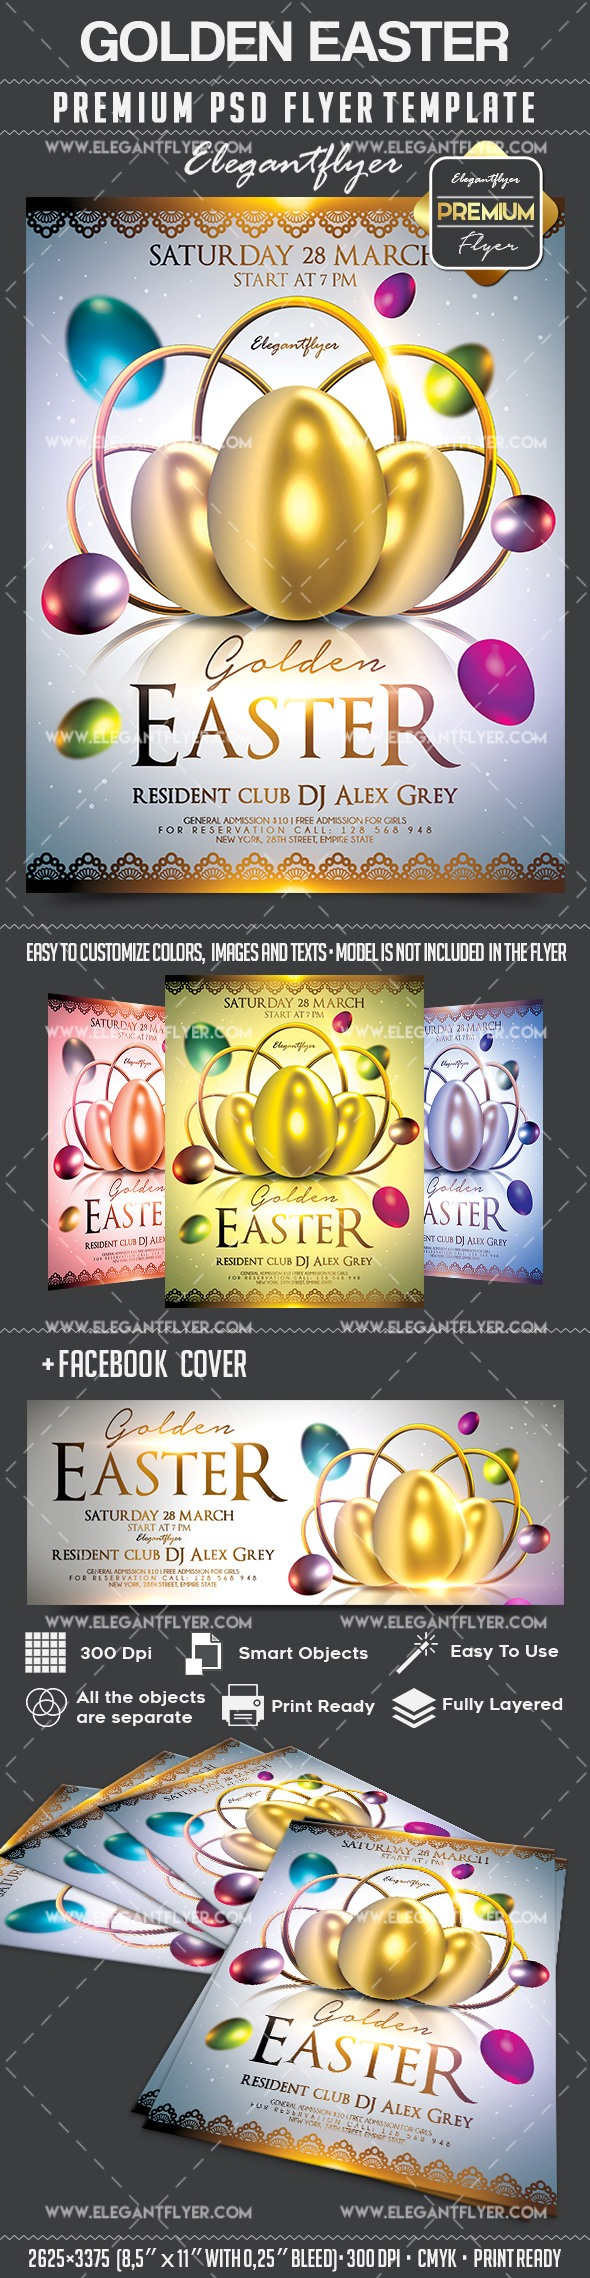 Golden Easter – Flyer PSD Template